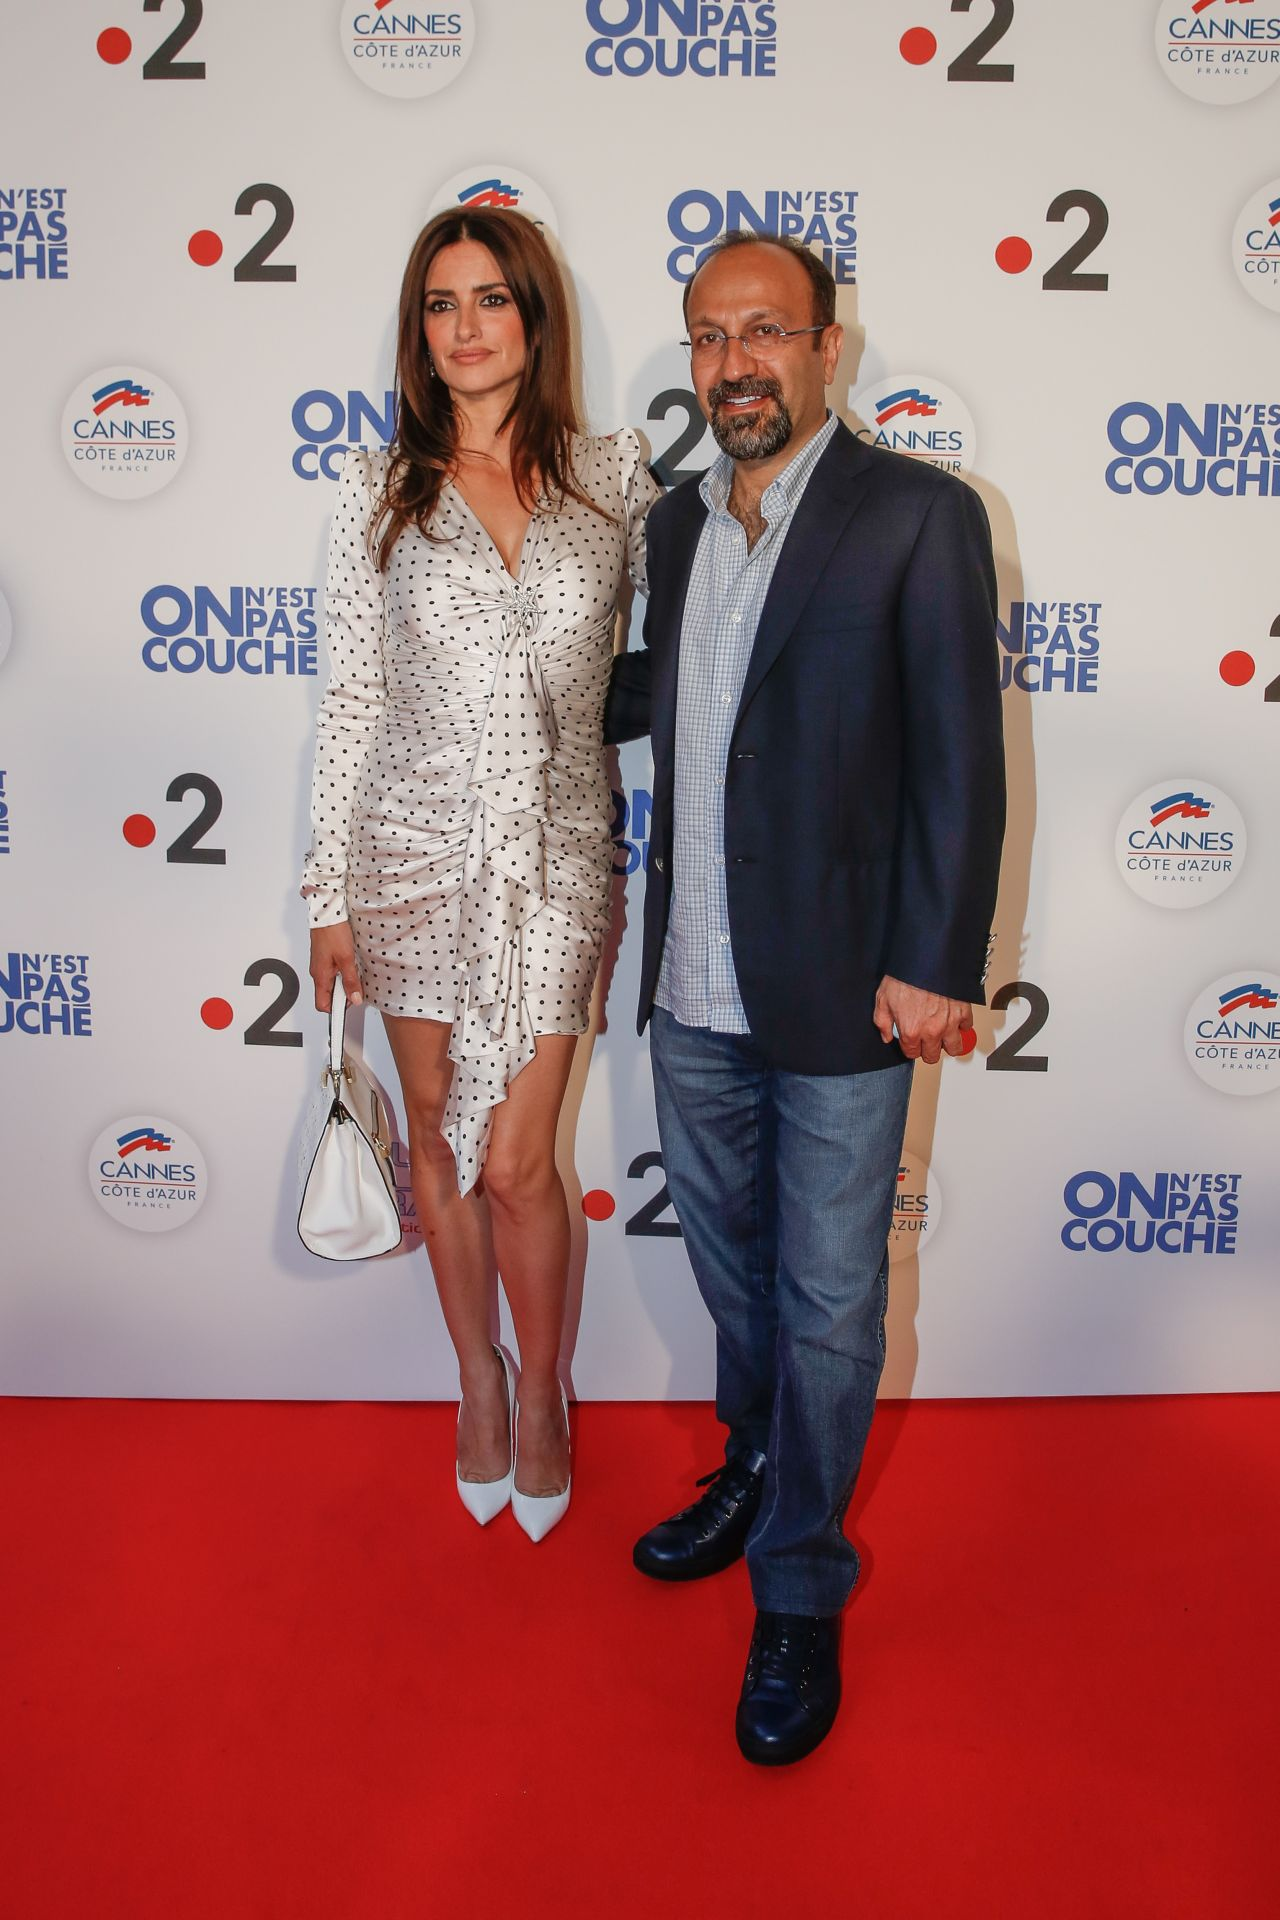 https://www.bellazon.com/main/uploads/monthly_2018_05/penelope-cruz-we-are-not-lying-photocall-at-cannes-film-festival-3.jpg.c2cf5127c5b644b0b629b1bb97958cea.jpg